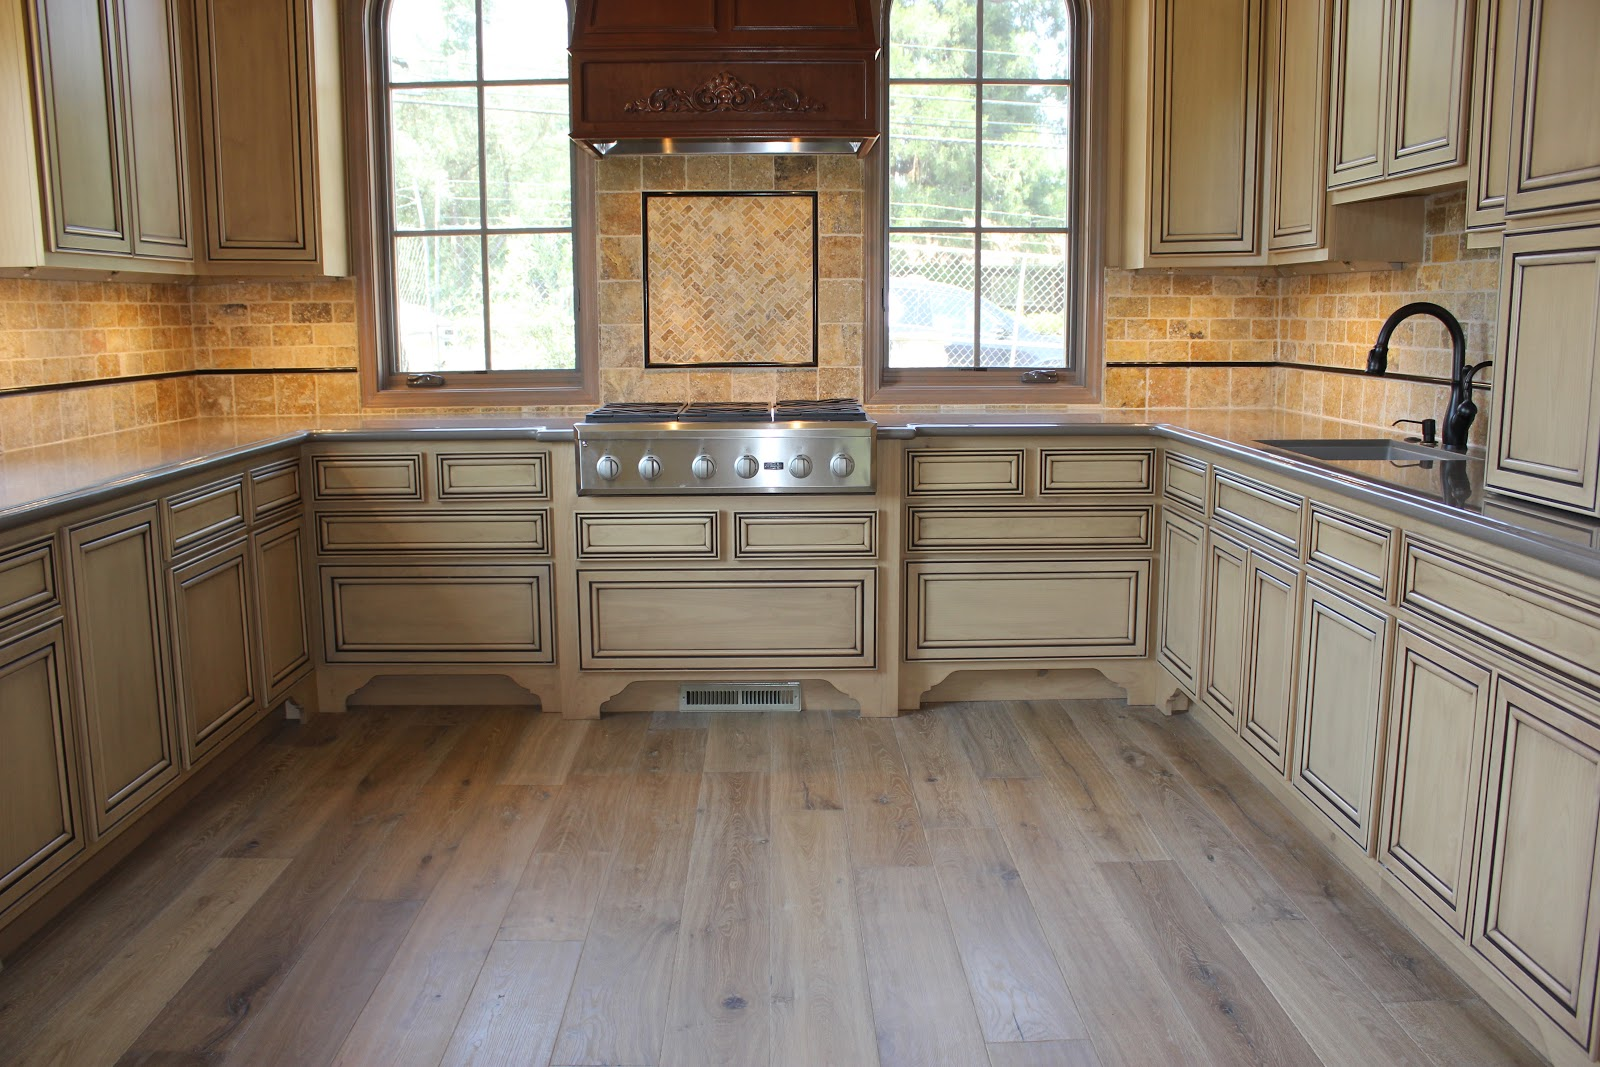 Simas floor and design company hardwood flooring by royal oak for Wood floors in kitchen